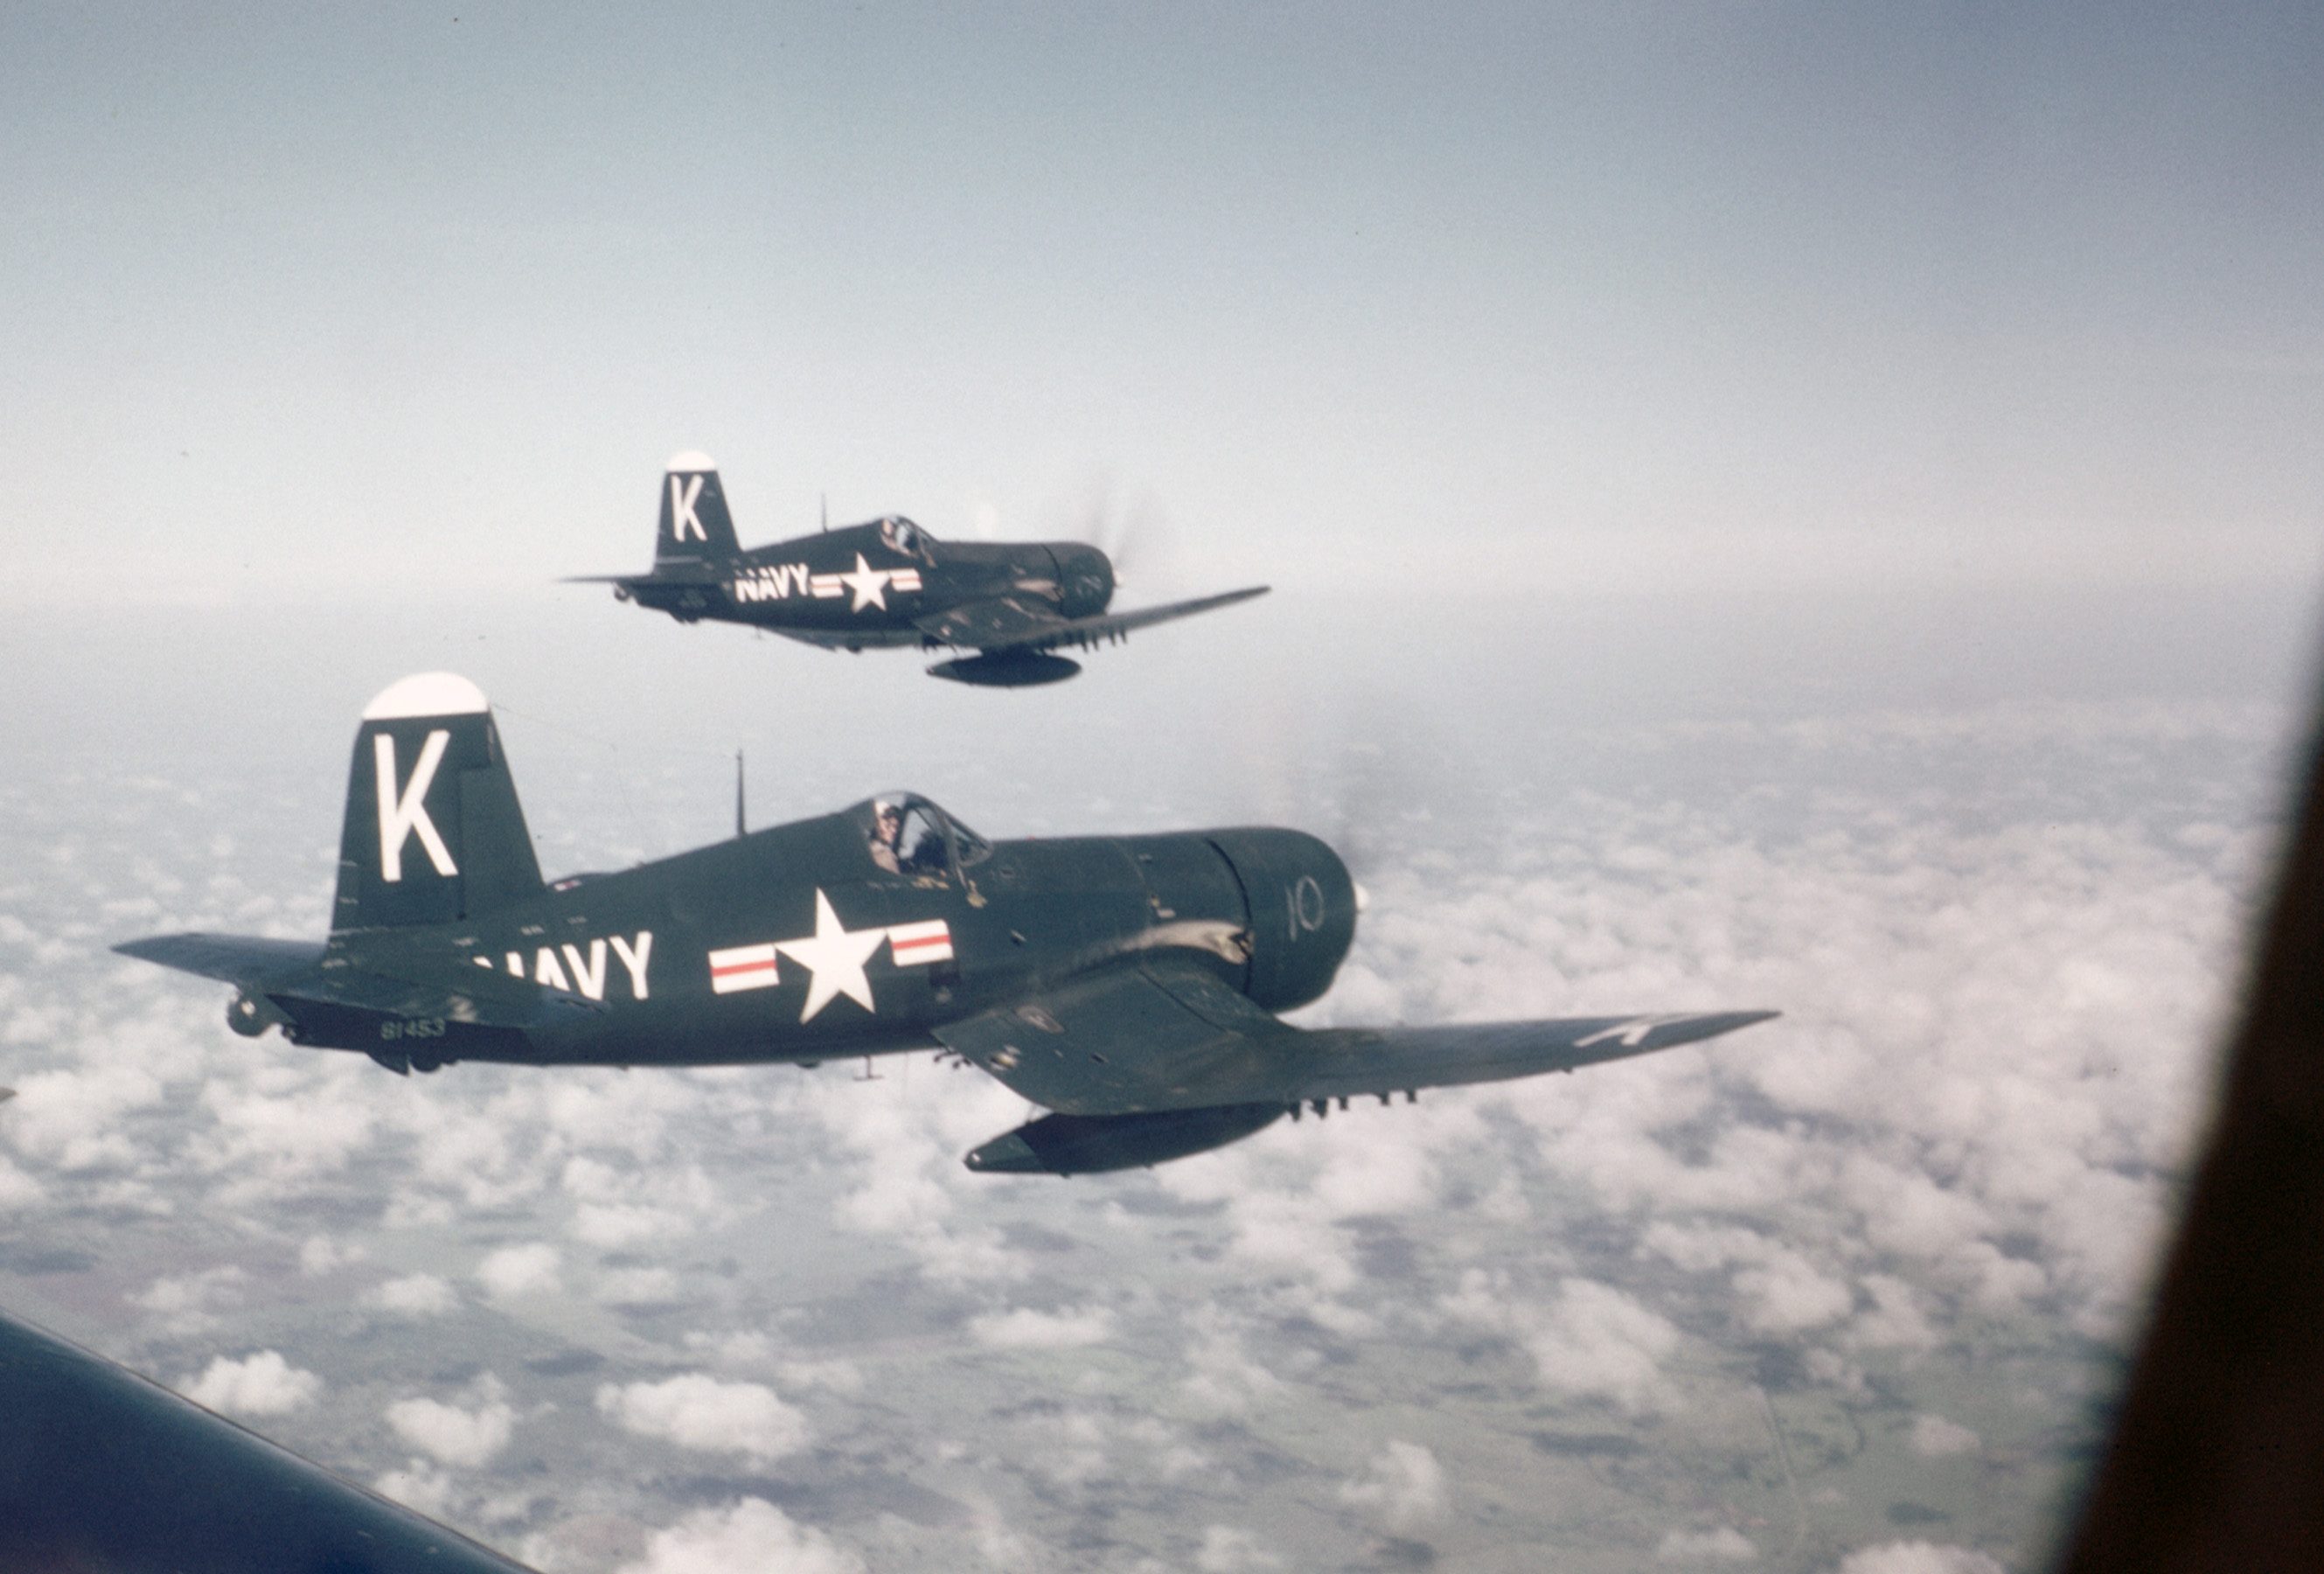 F4U-4 Corsairs similar to those flown by Brown and Hudner on that fateful day in December, 1950. (photo via Bryan Makos)